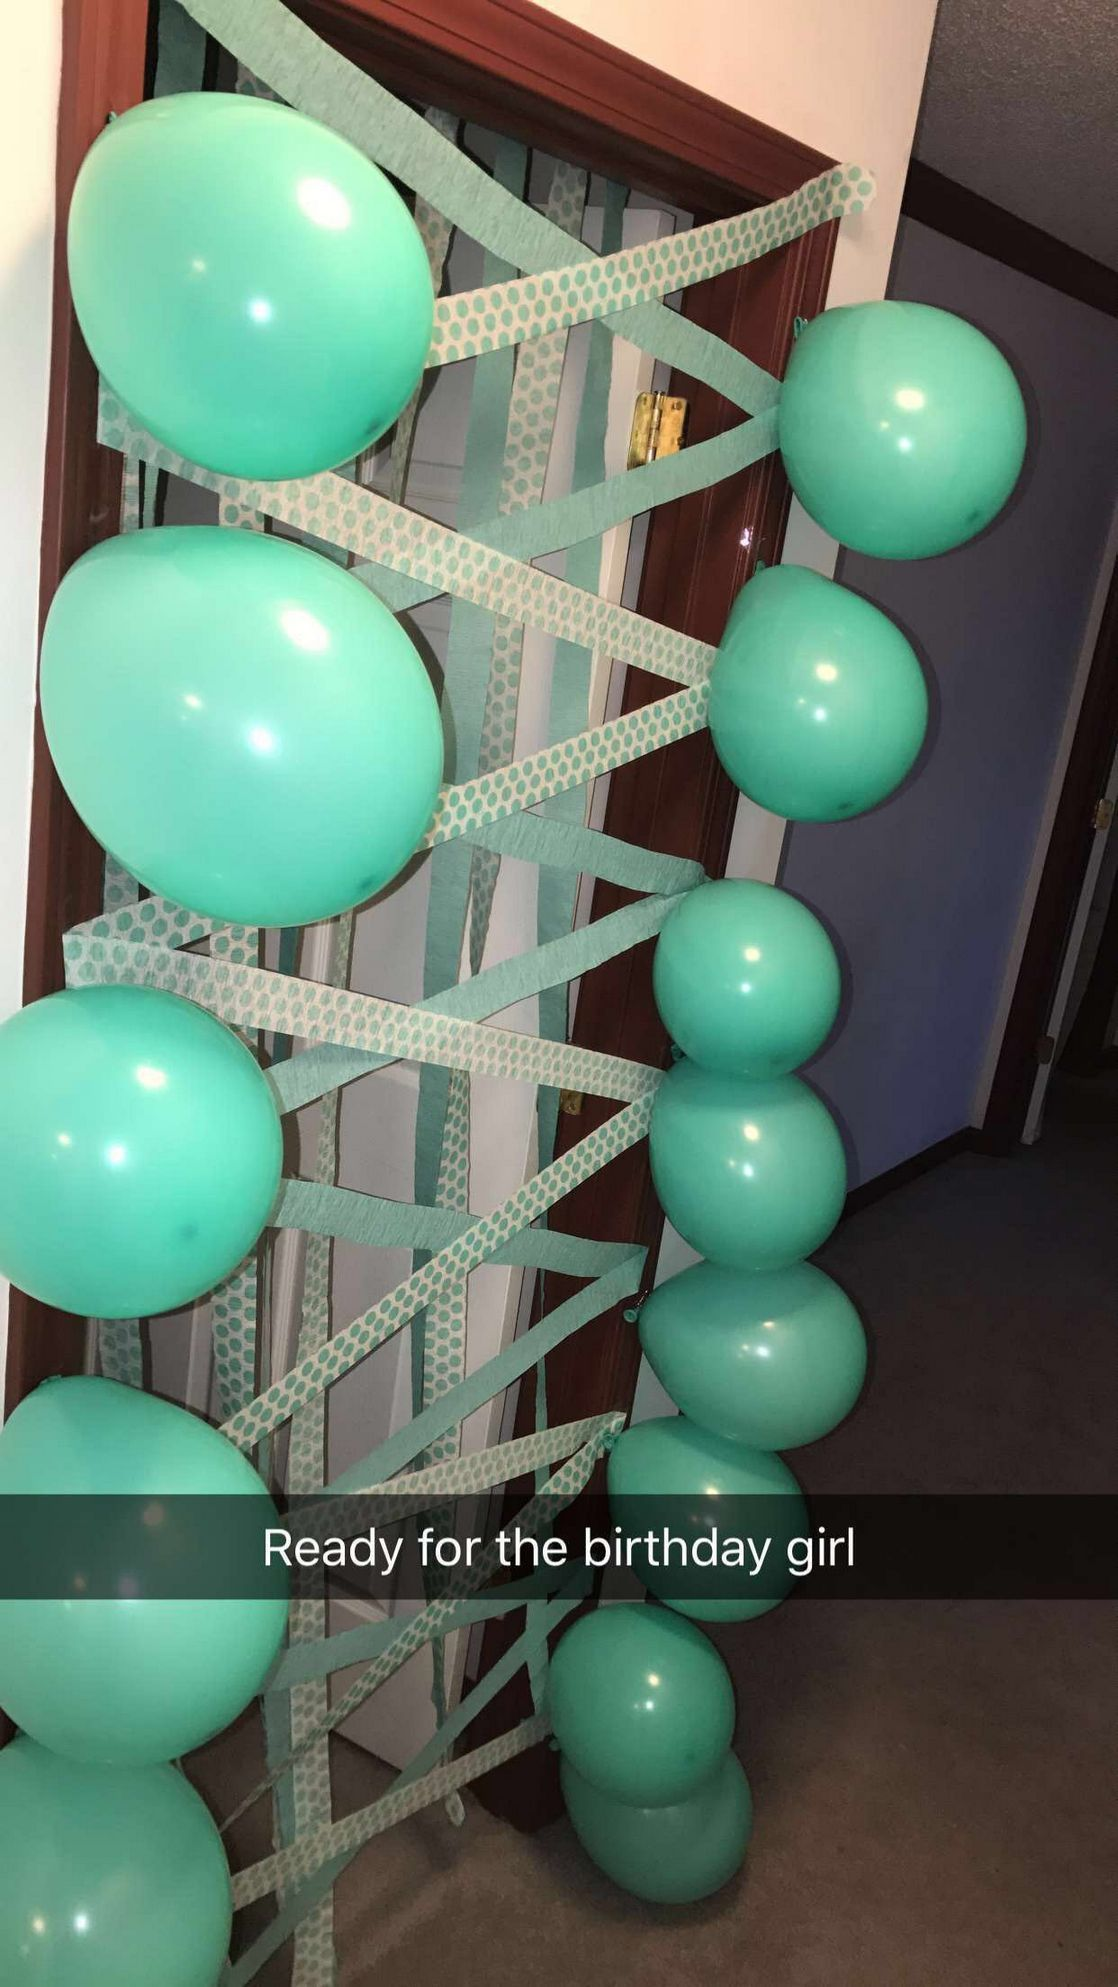 +31 That Will Motivate You 21st Birthday Decorations Diy Party Ideas 83 - freehomeideas.com #21stbirthdaydecorations